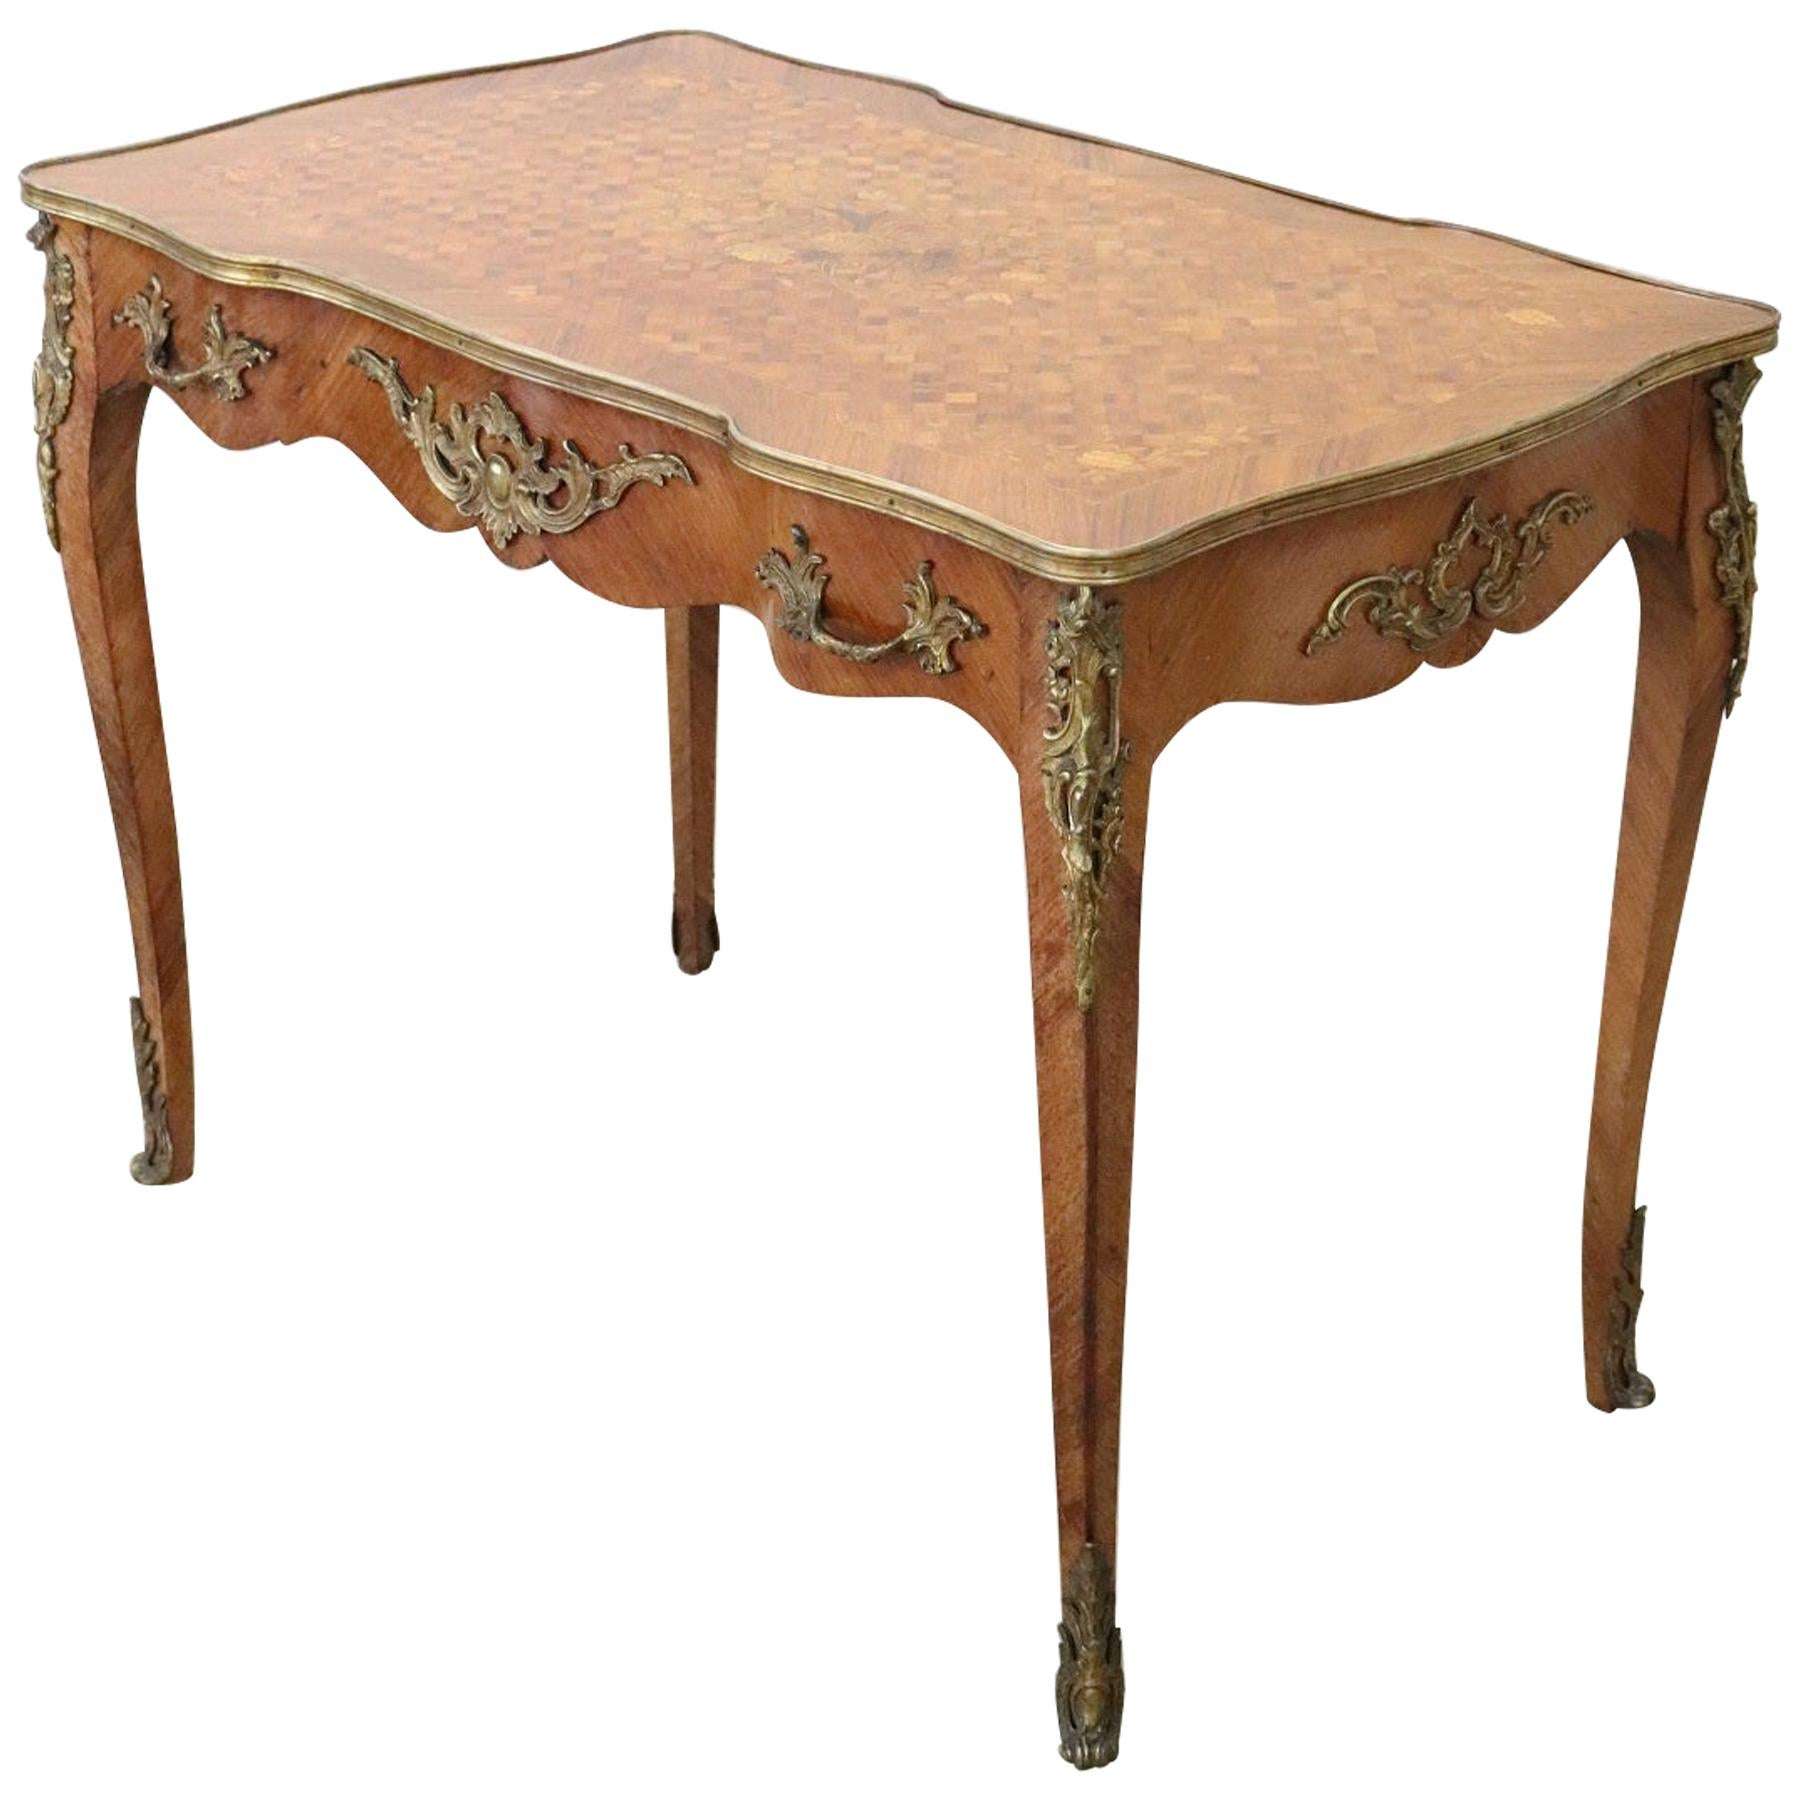 19th Century Napoleon III Marquetry and Gilded Bronze Writing Desk